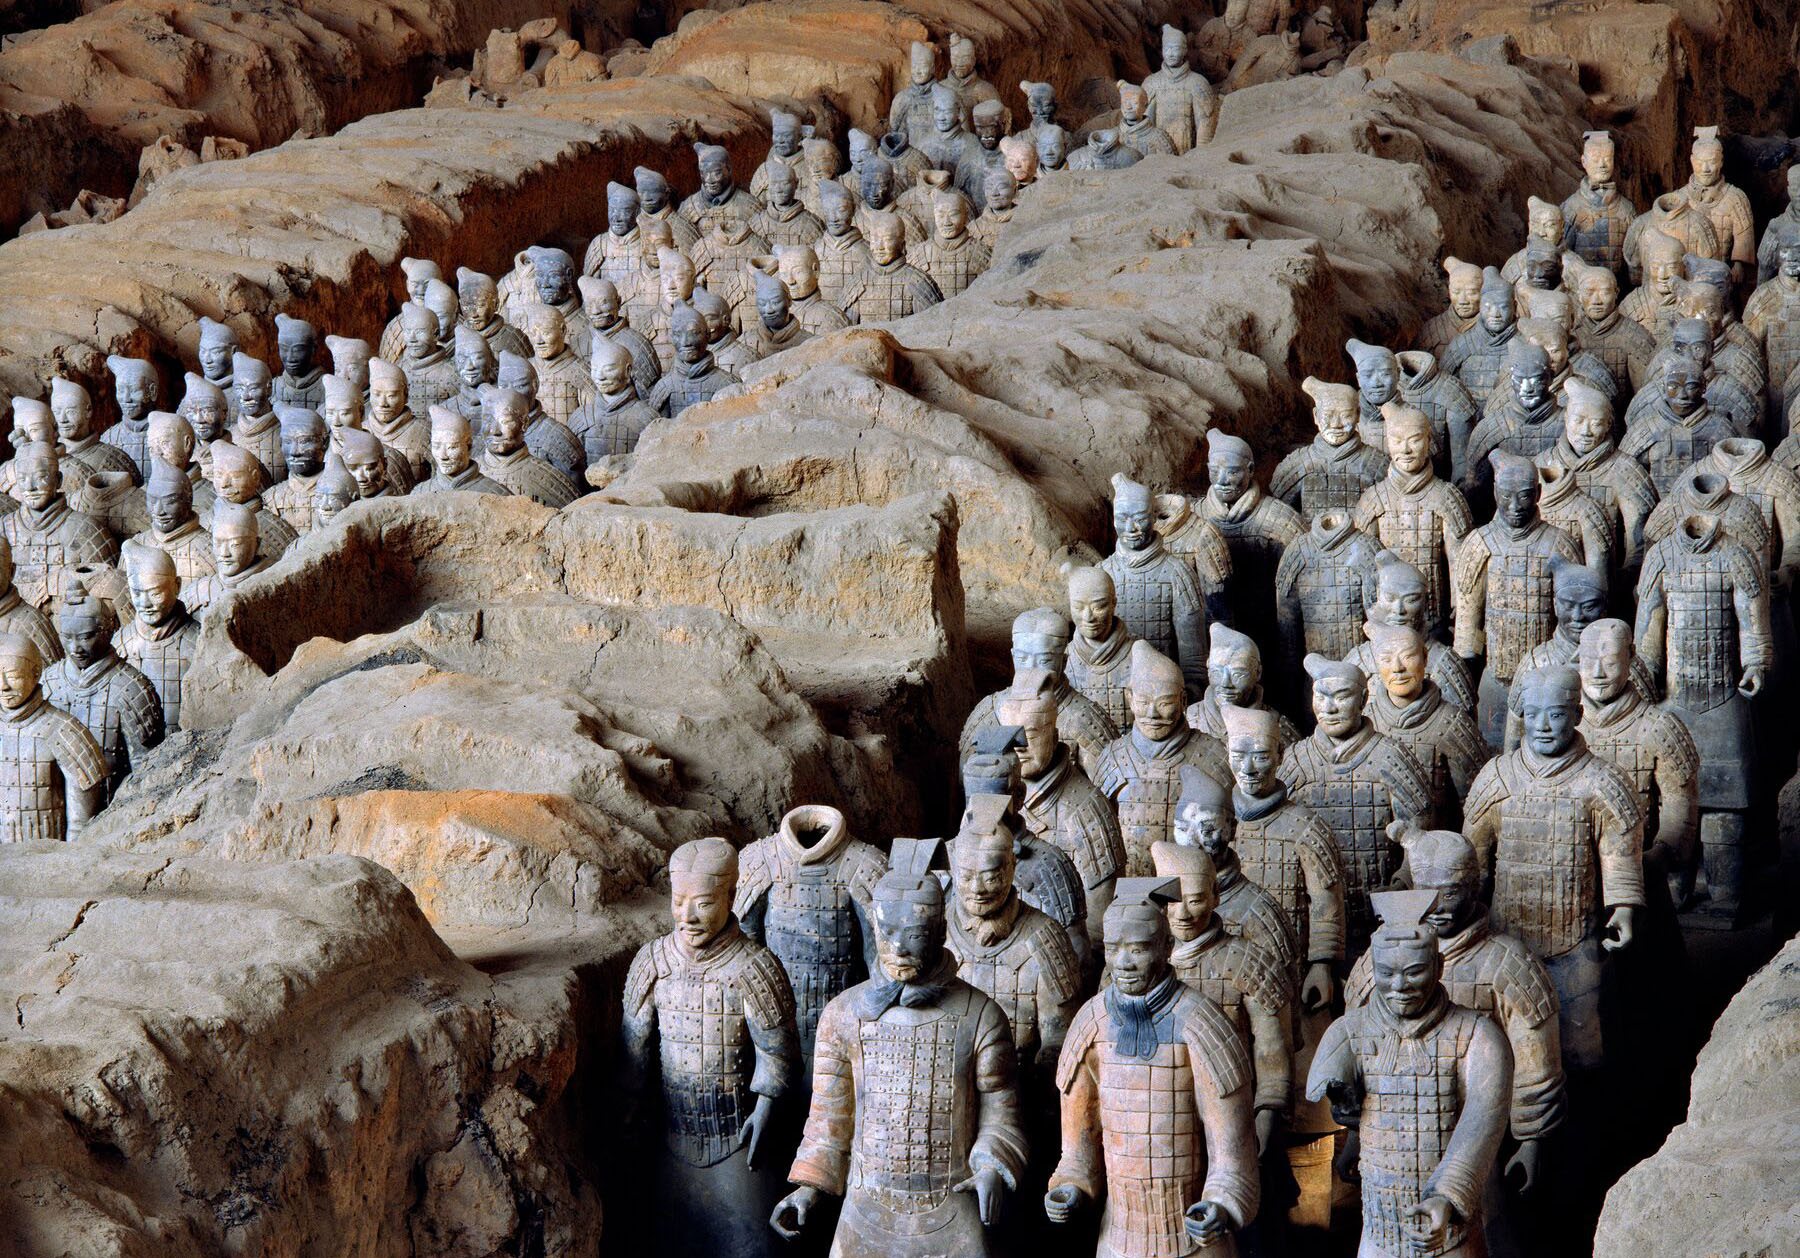 View of Pit 1 of the Terracotta Army showing the hundreds of warriors once armed with bronze weapons. Photo Xia Juxian.